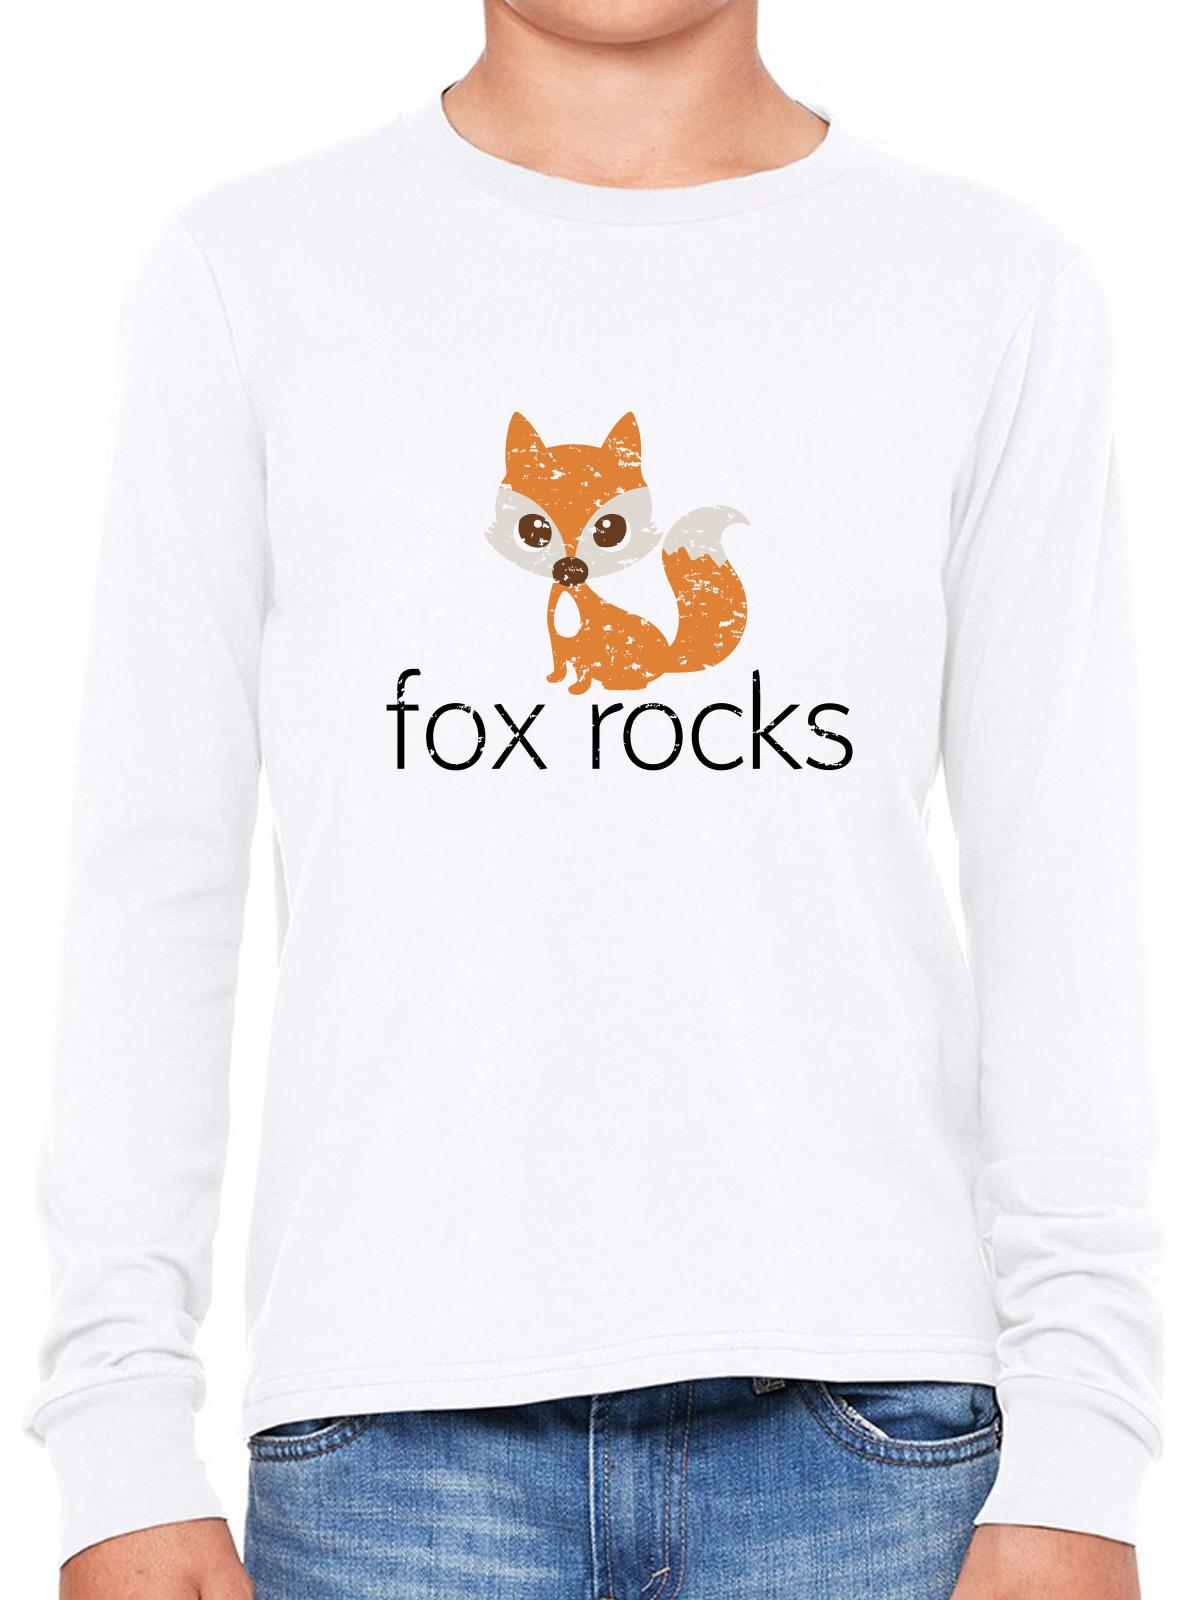 Fox Rocks - Cute Fox Graphic Design Girl's Long Sleeve T-Shirt